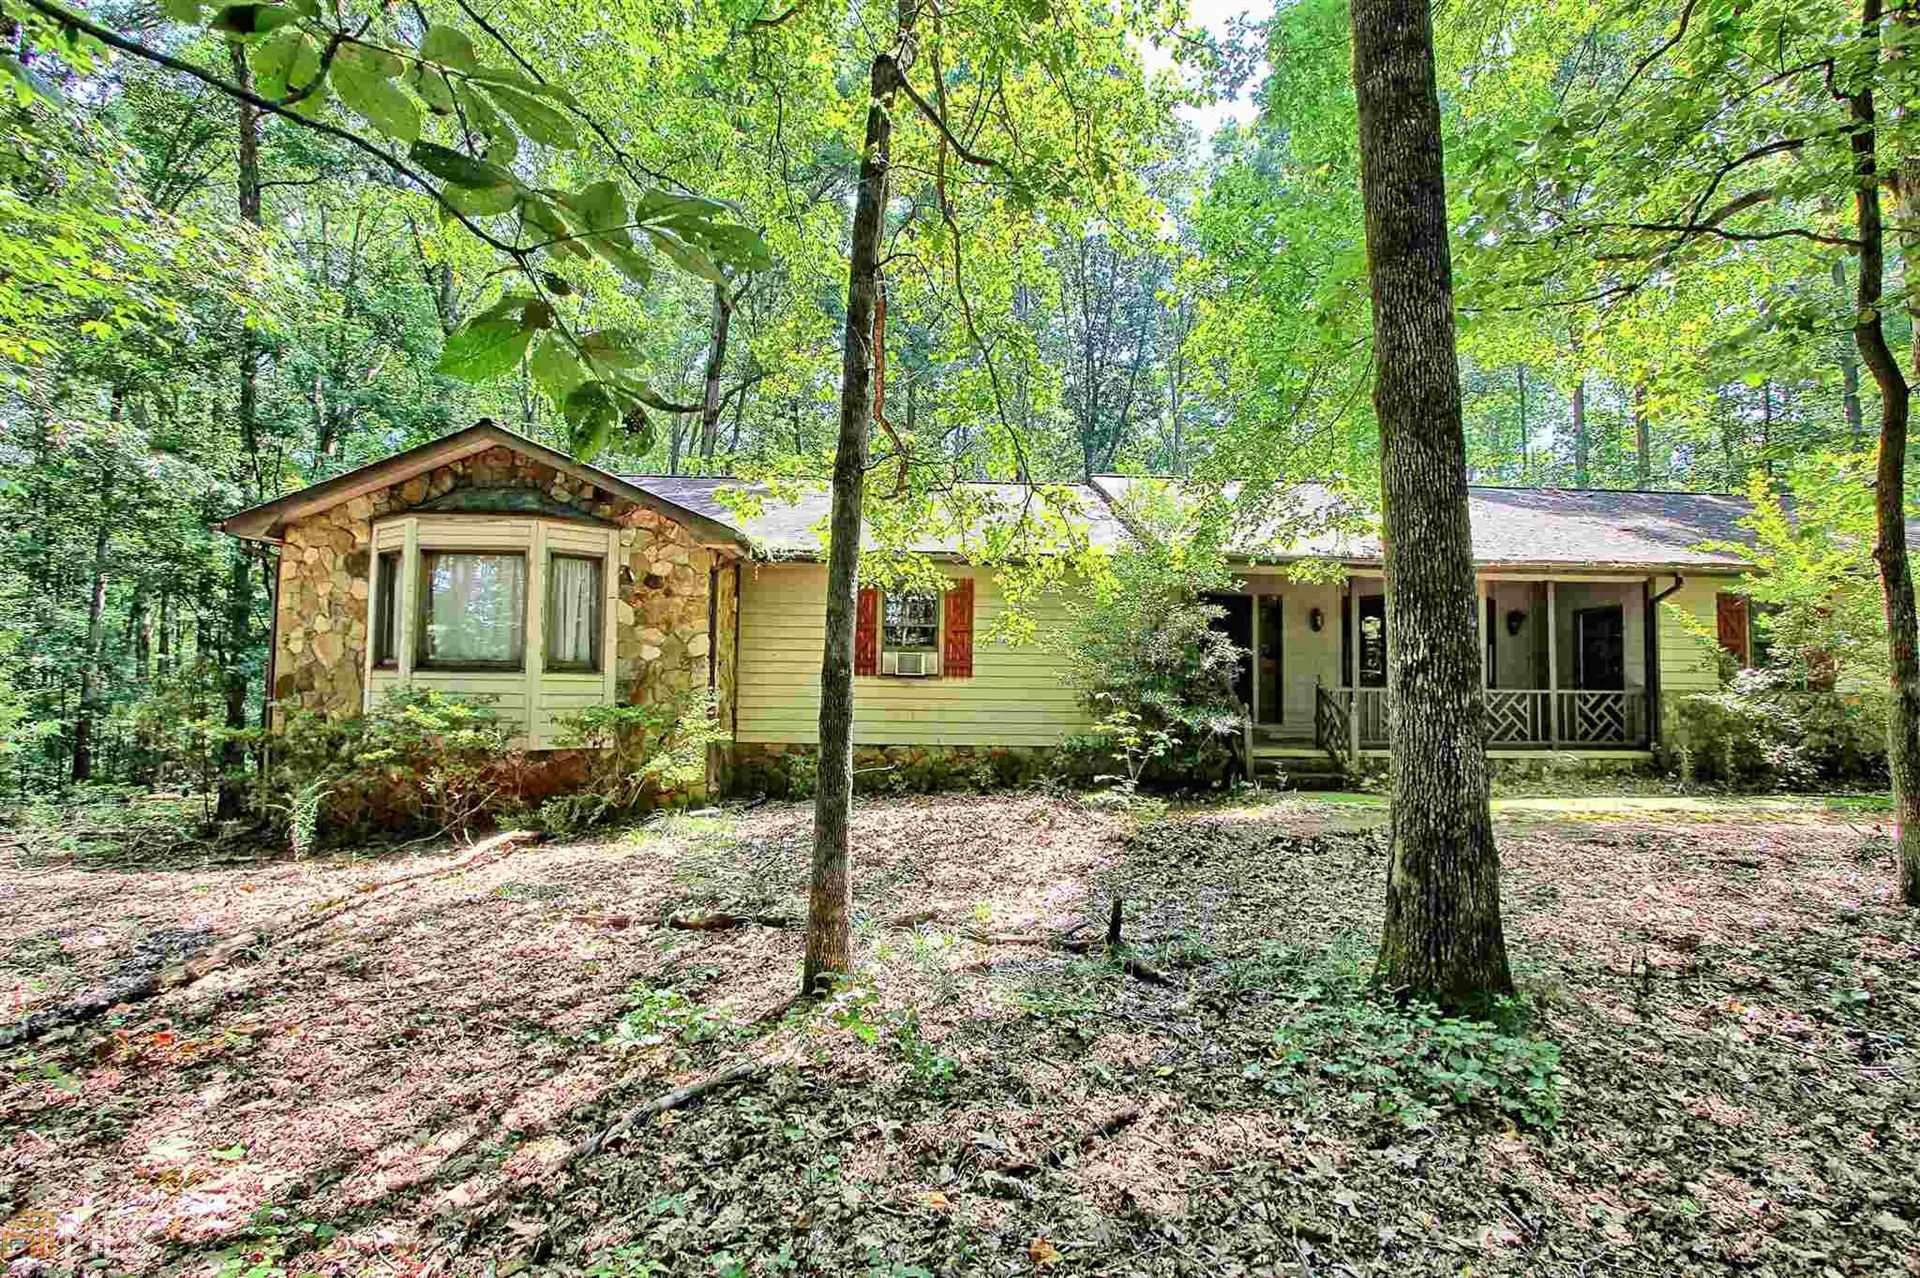 15 Pleasant Grove Rd, McDonough, GA 30252 - #: 8836454